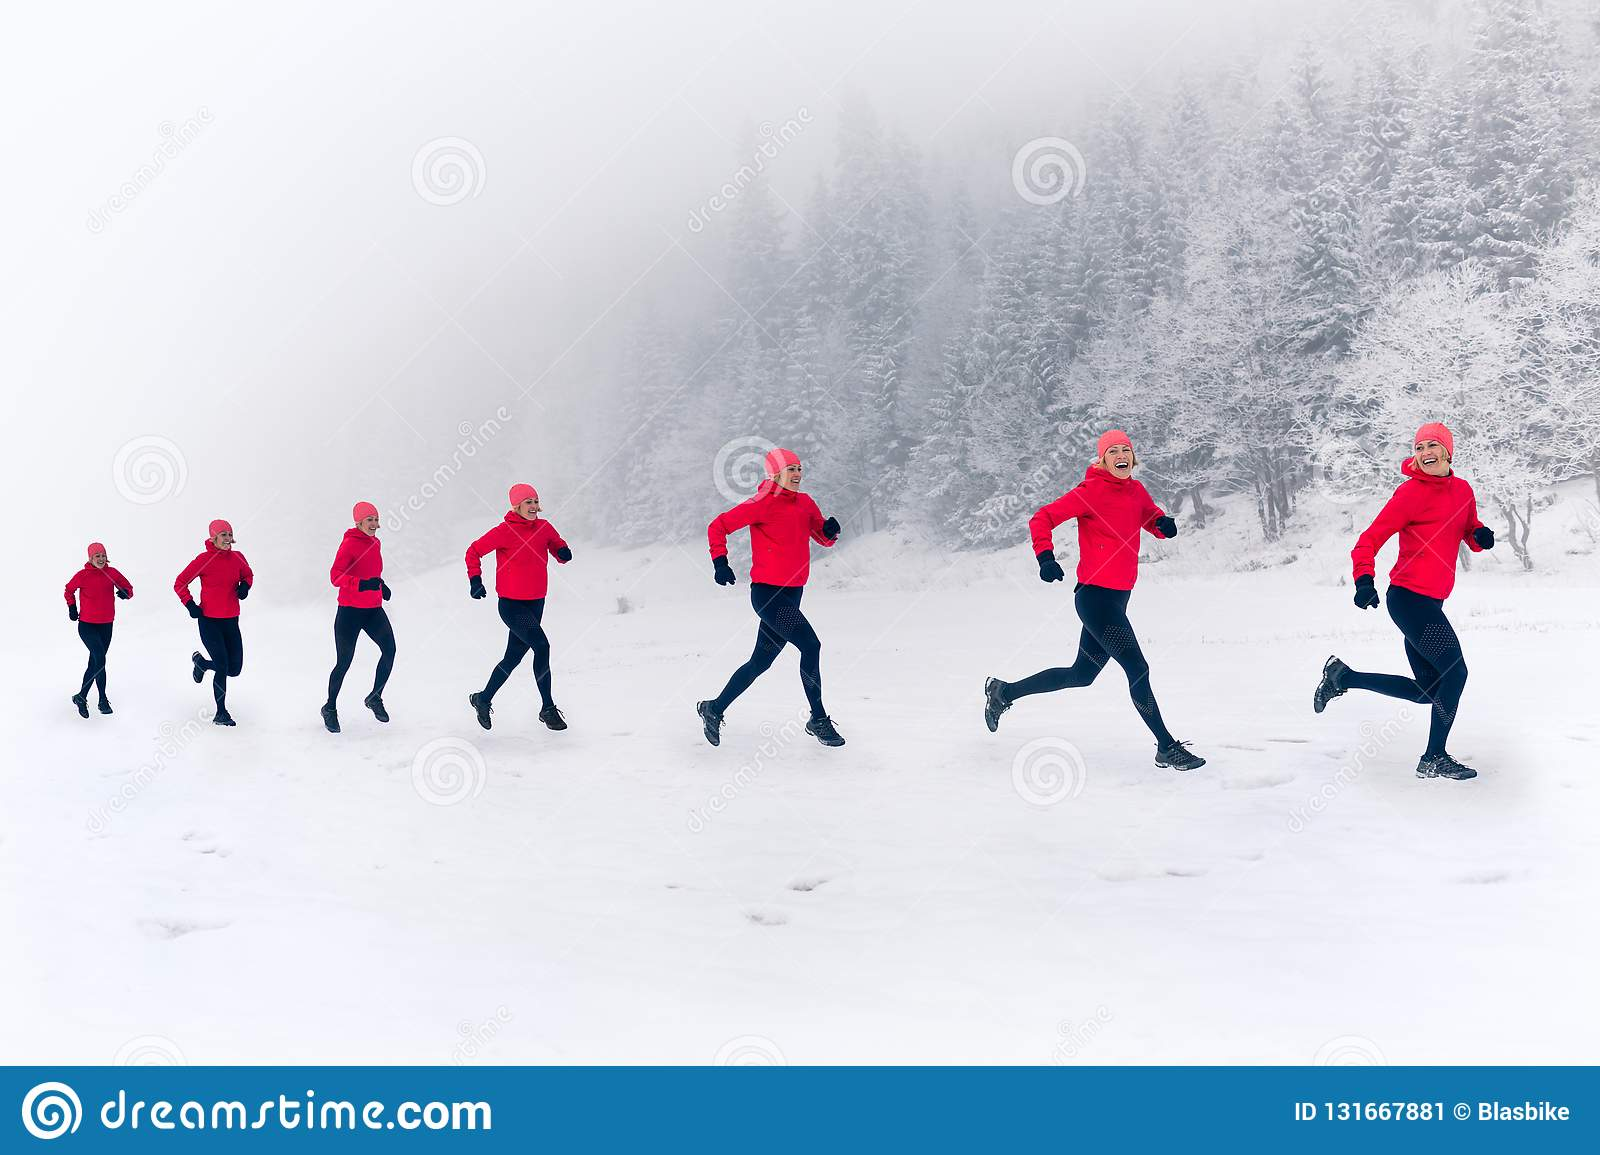 Girls running together on snow in winter mountains. Sport, fitness inspiration and motivation. Happy group of women trail running